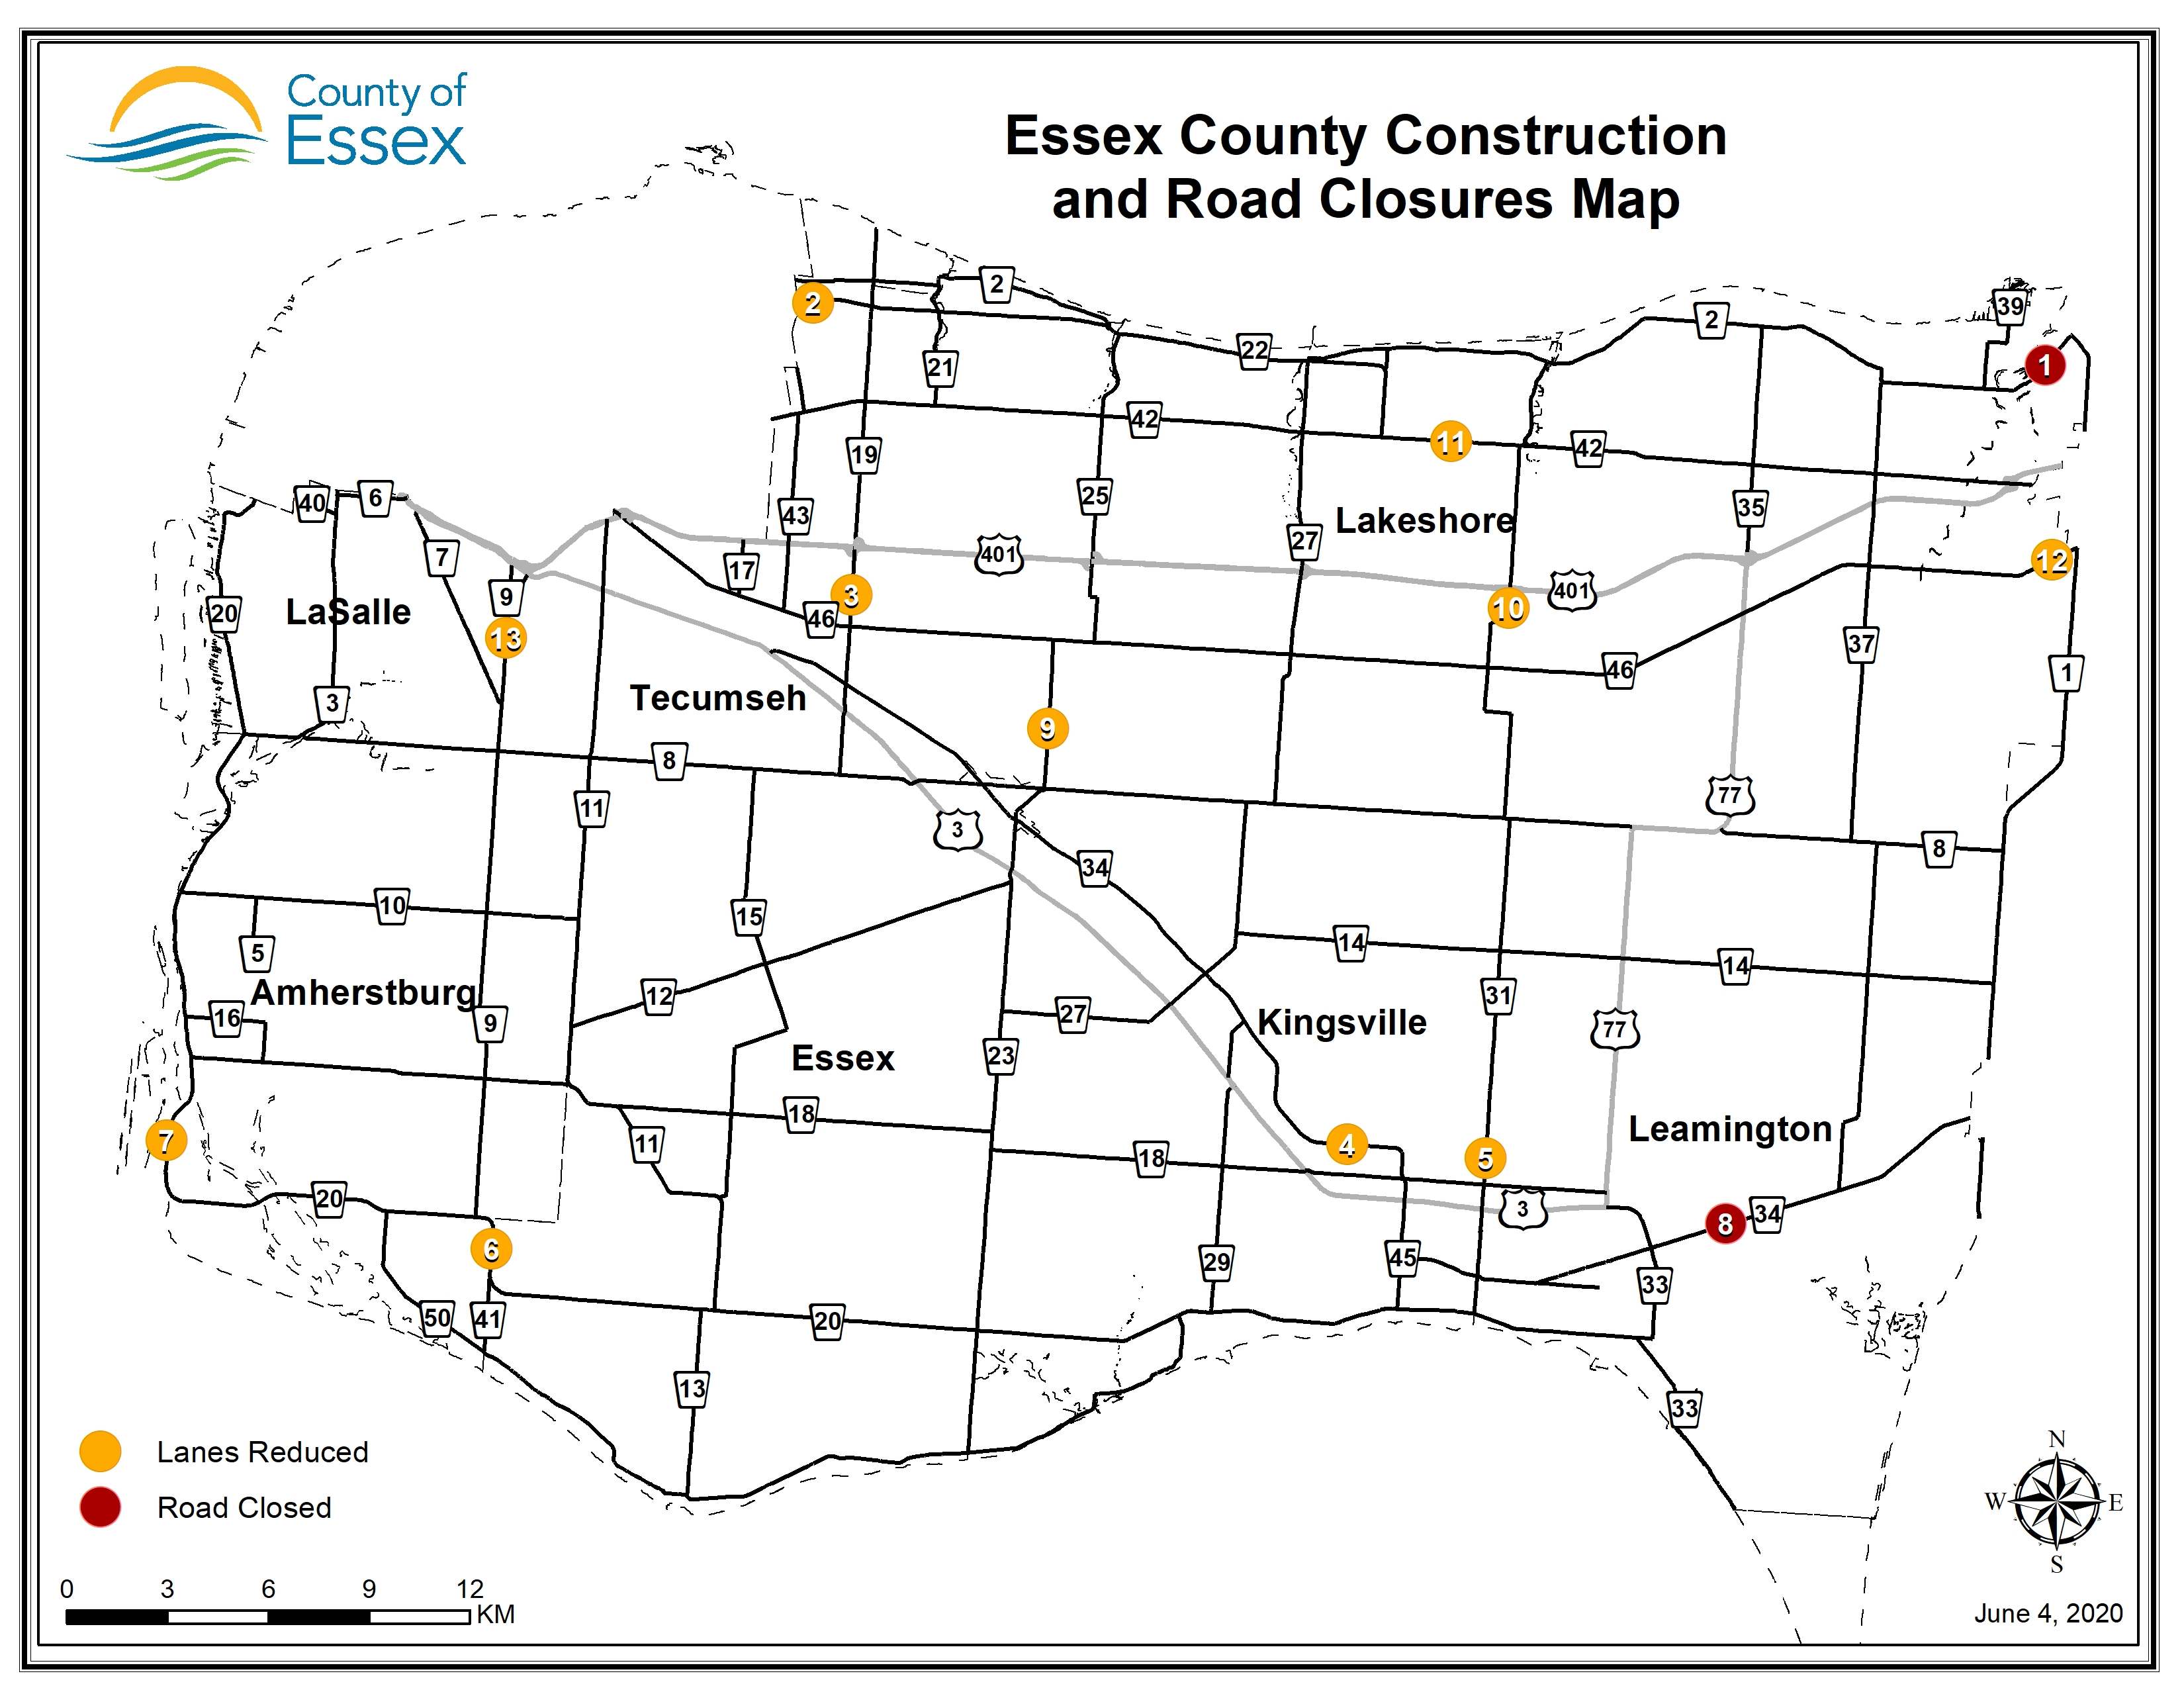 A map of Essex County showing road closures and lane restrictions for June 4, 2020